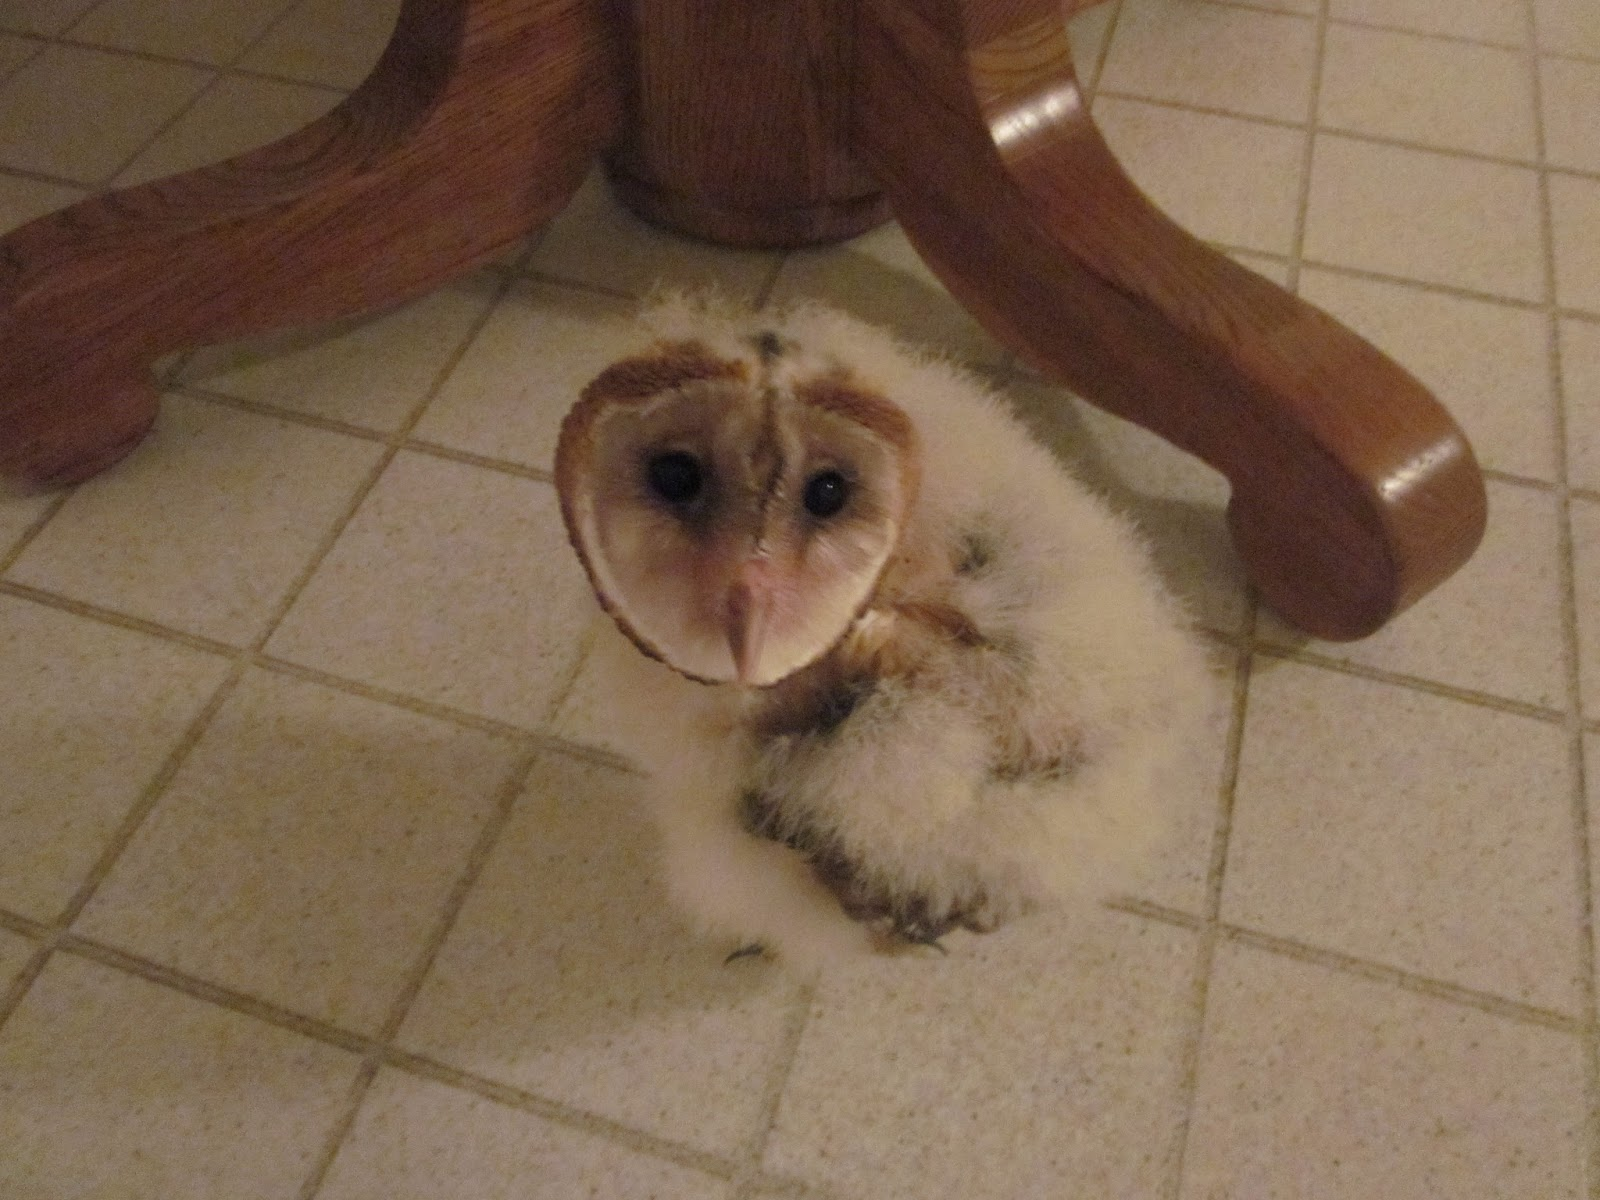 World Bird Sanctuary: Raising Baby Barn Owls for Education